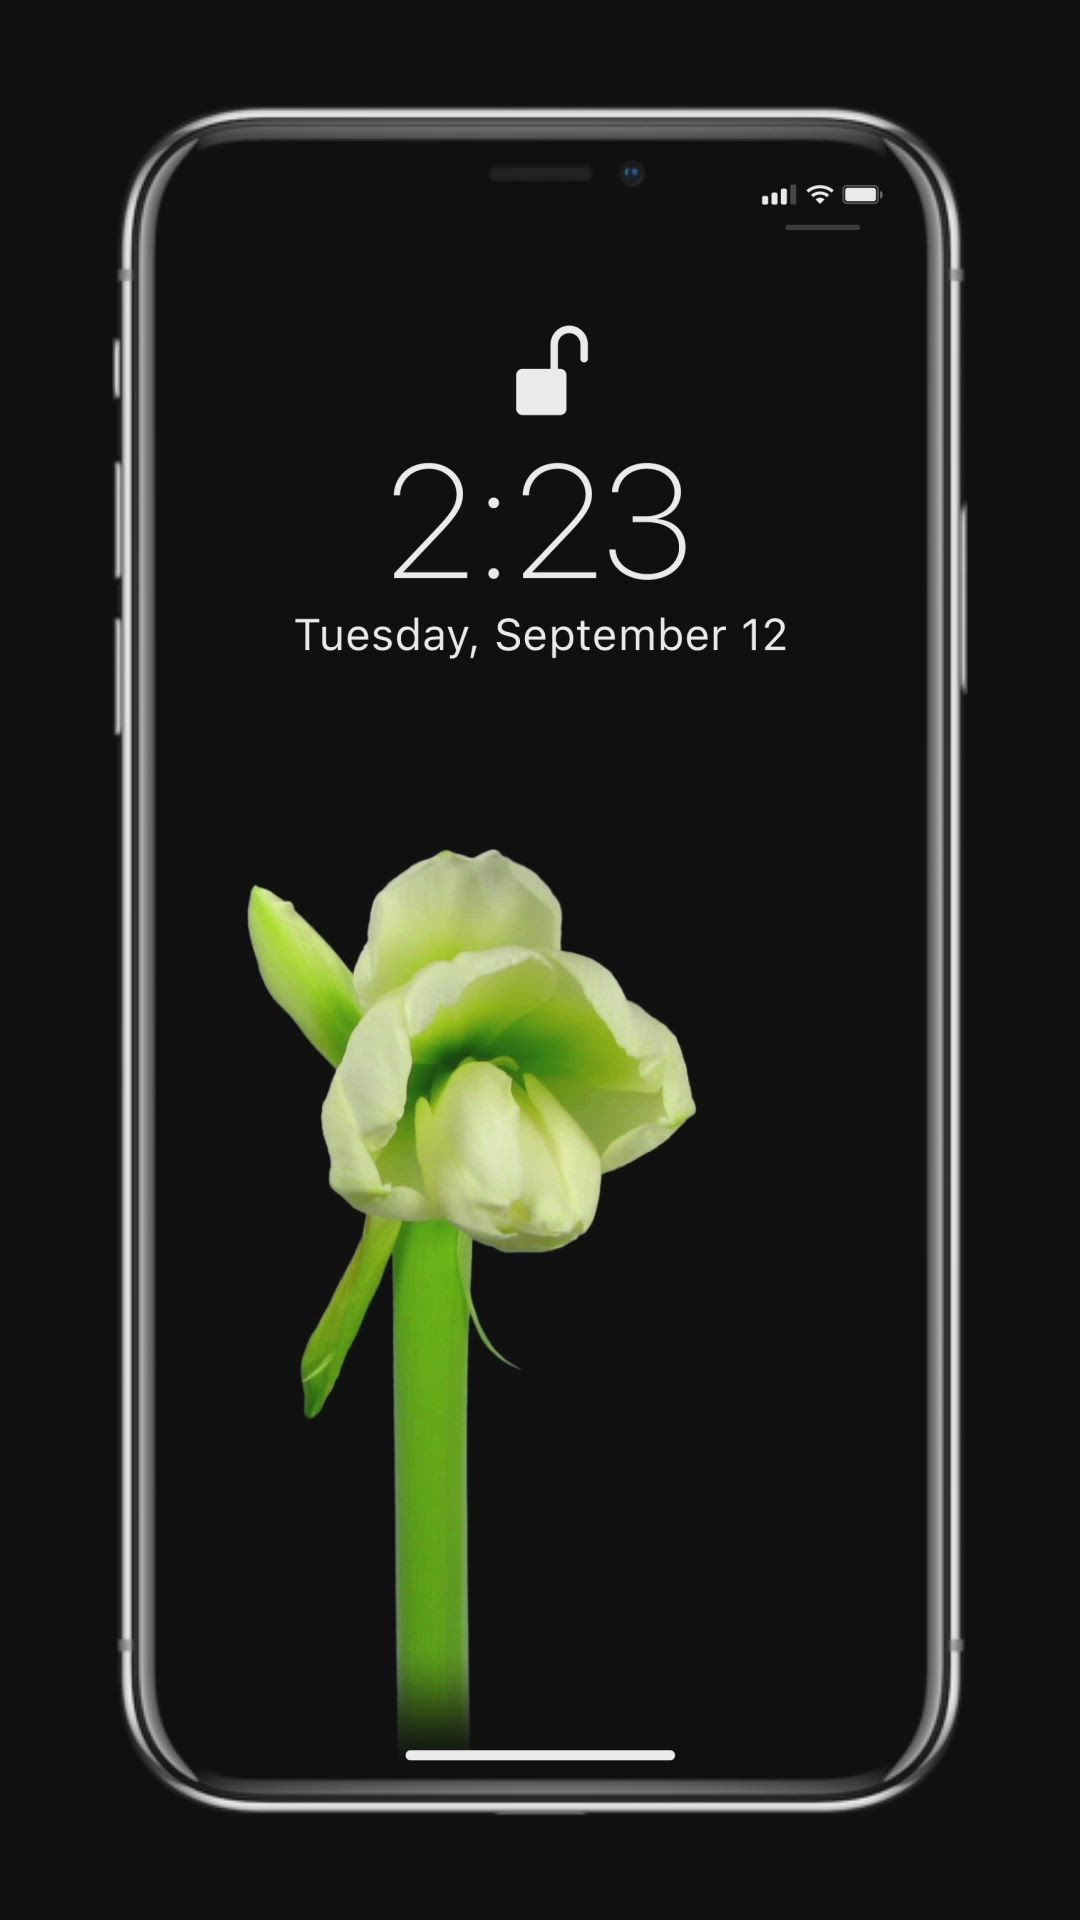 Collection Of Flower Wallpapers Video Flower Iphone Wallpaper Flower Phone Wallpaper Beautiful Wallpapers For Iphone